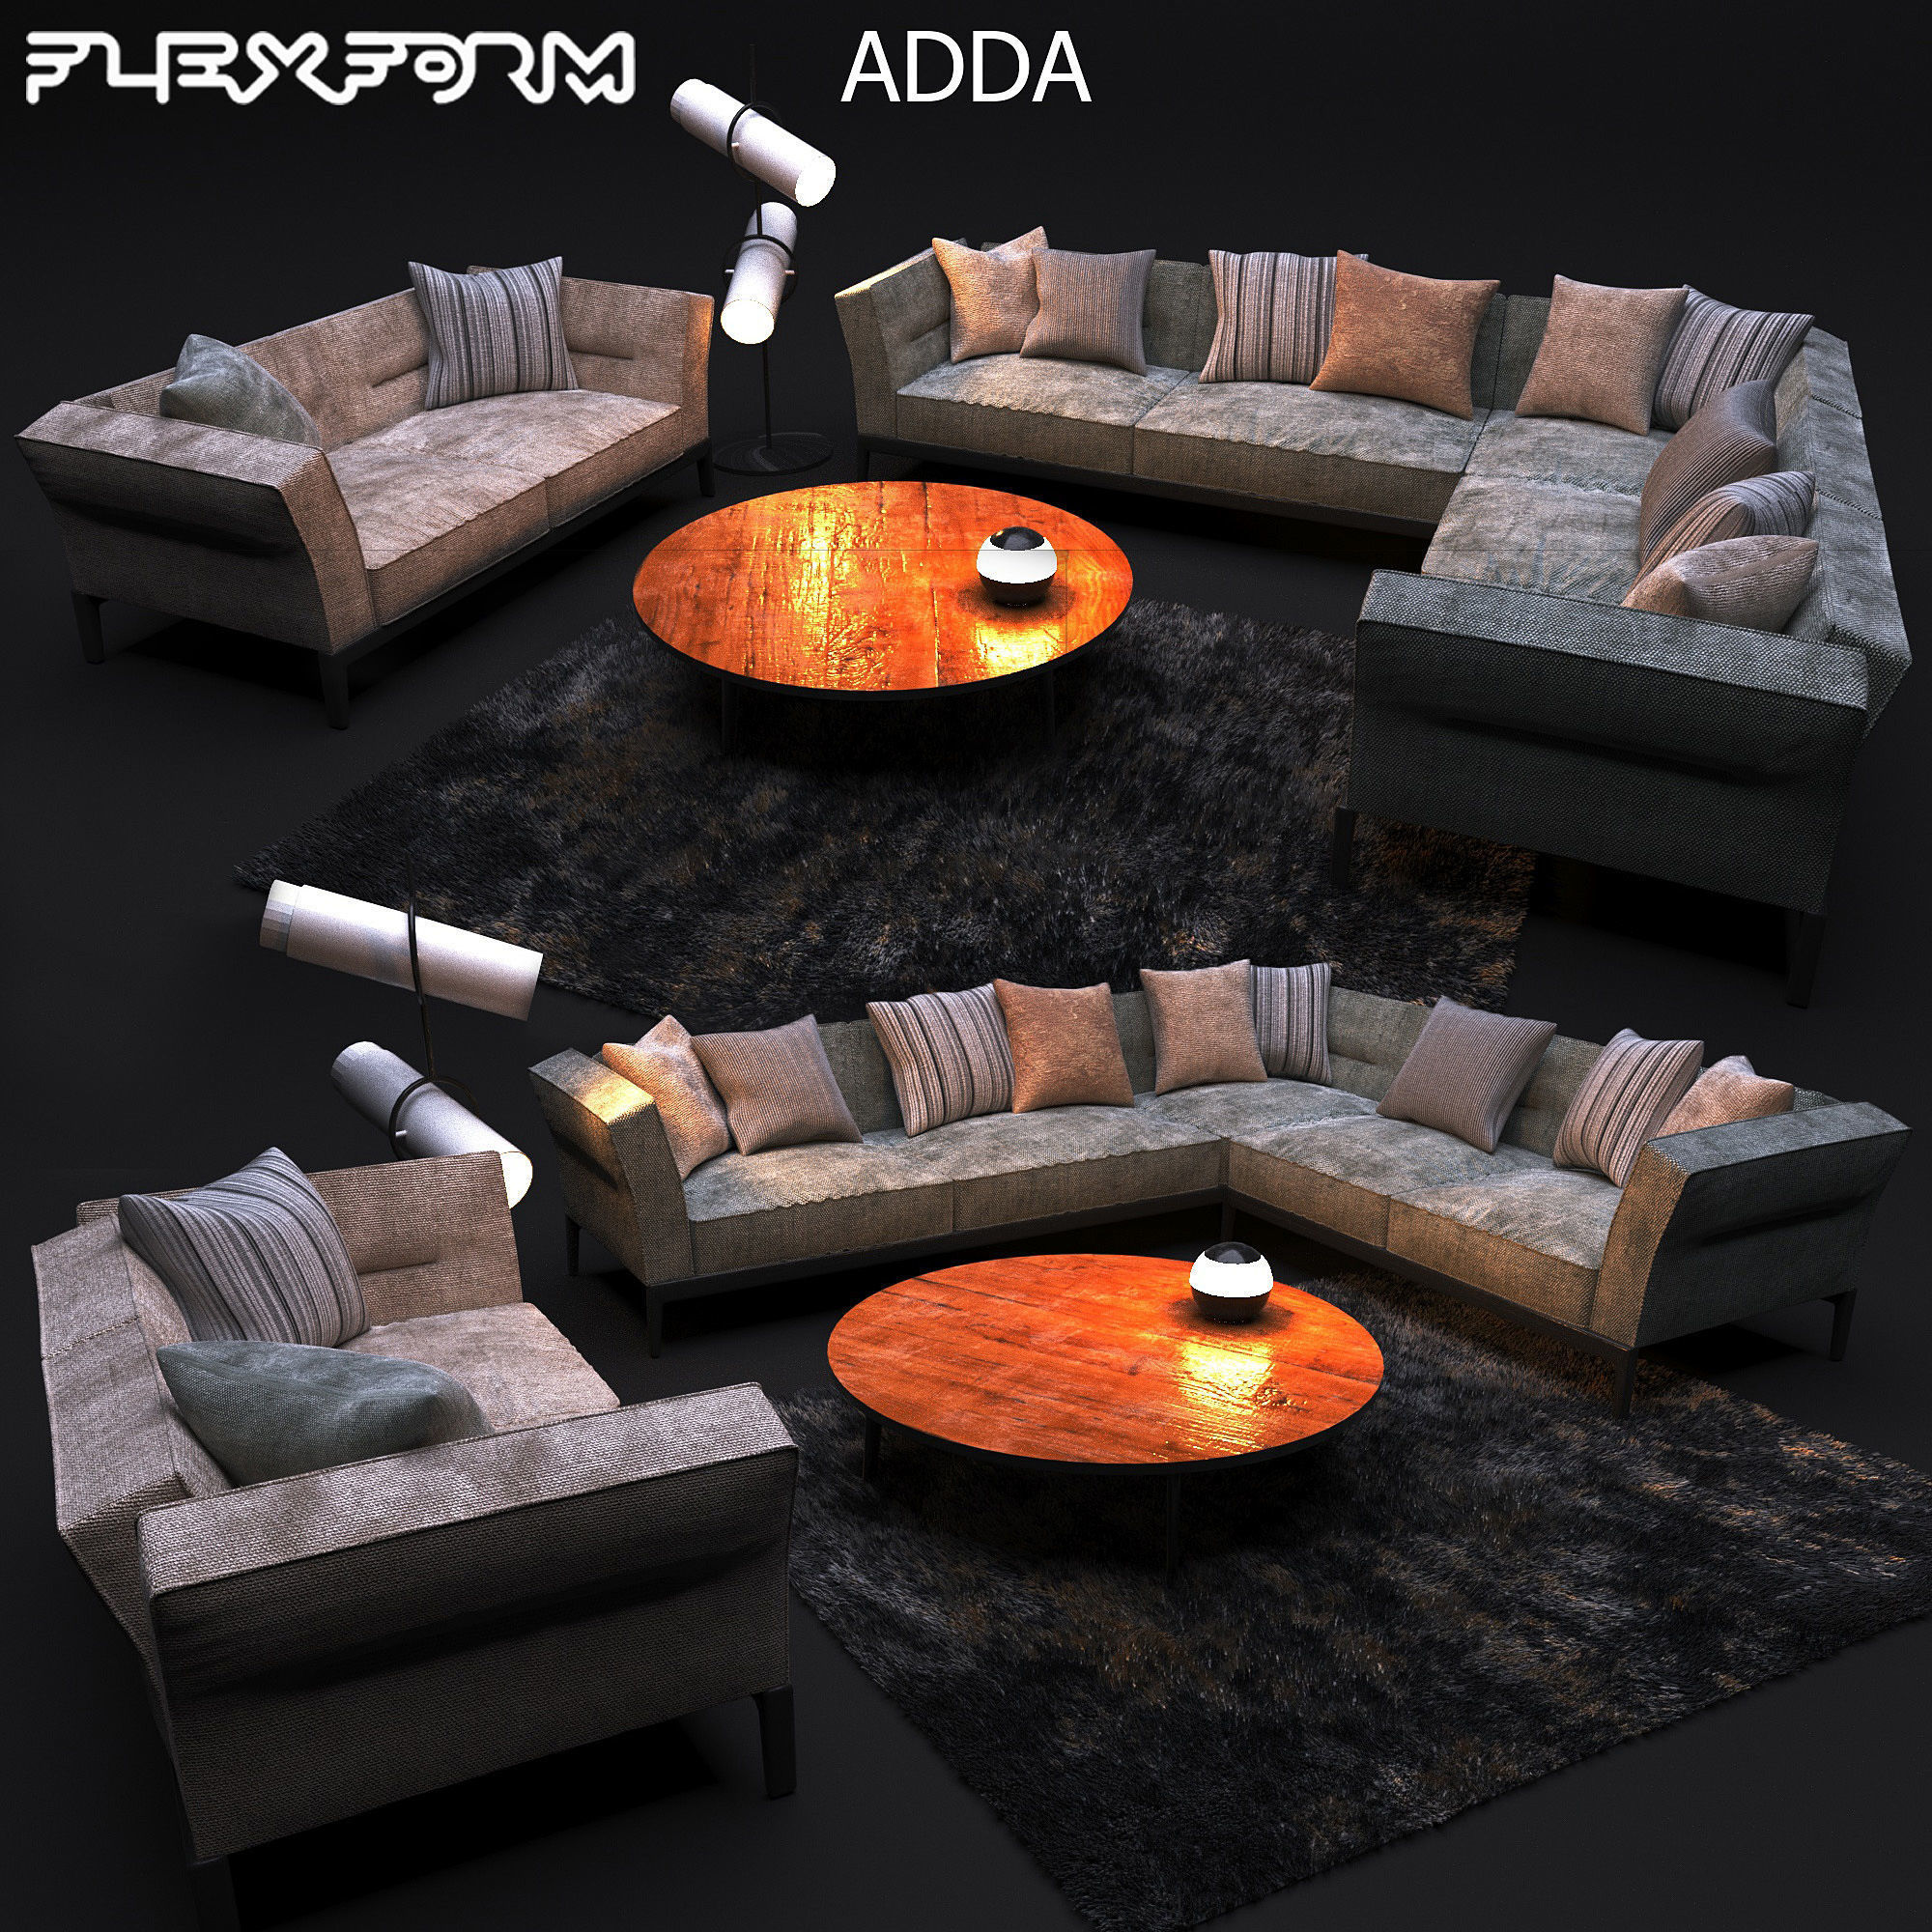 Brilliant Sofa In Modern Style Flexform Adda 3D Model Gmtry Best Dining Table And Chair Ideas Images Gmtryco